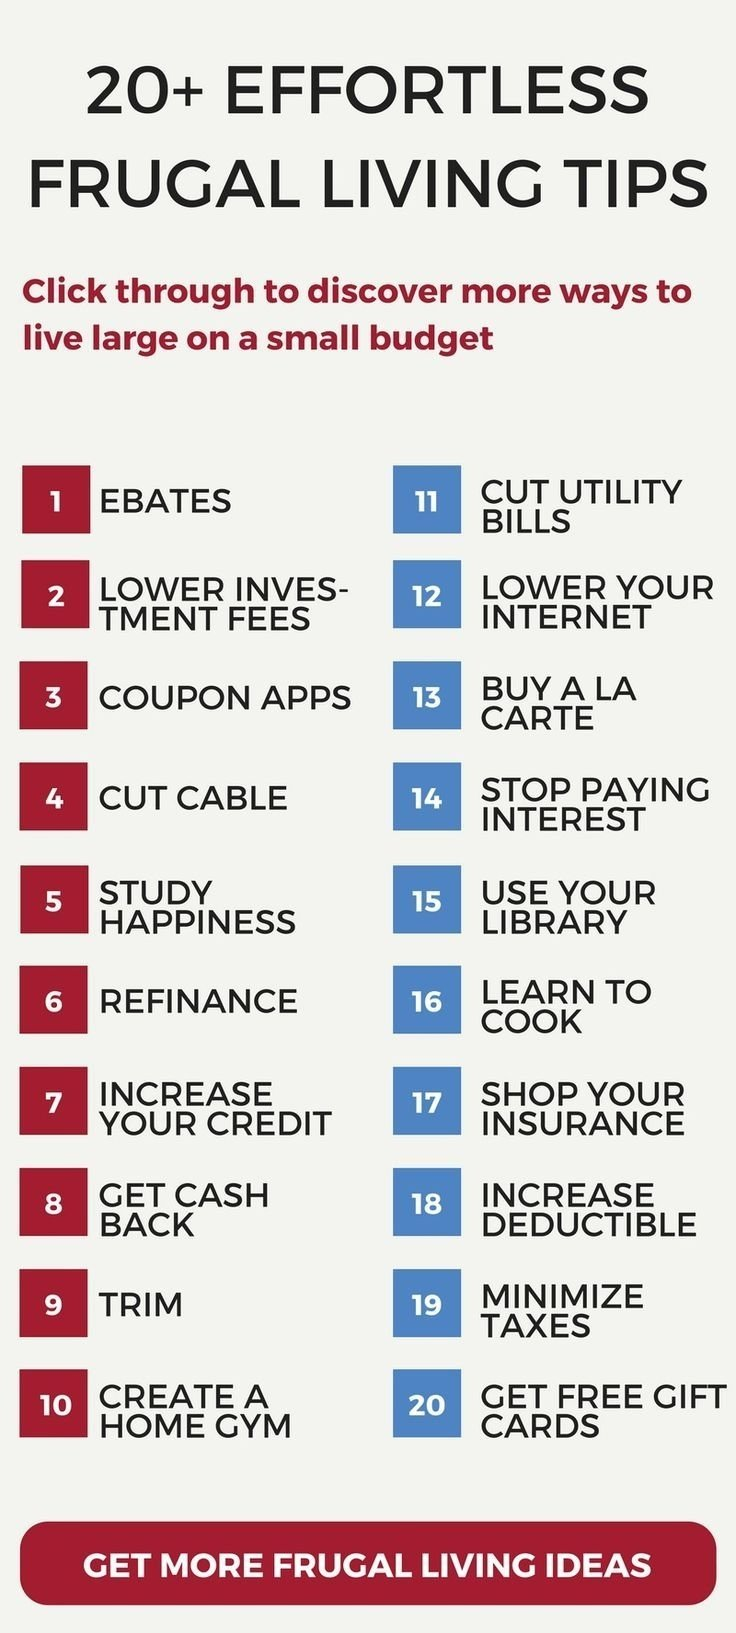 10 Awesome Frugal Ideas To Save Money how to save money wisely 21 super easy ways to save money fast